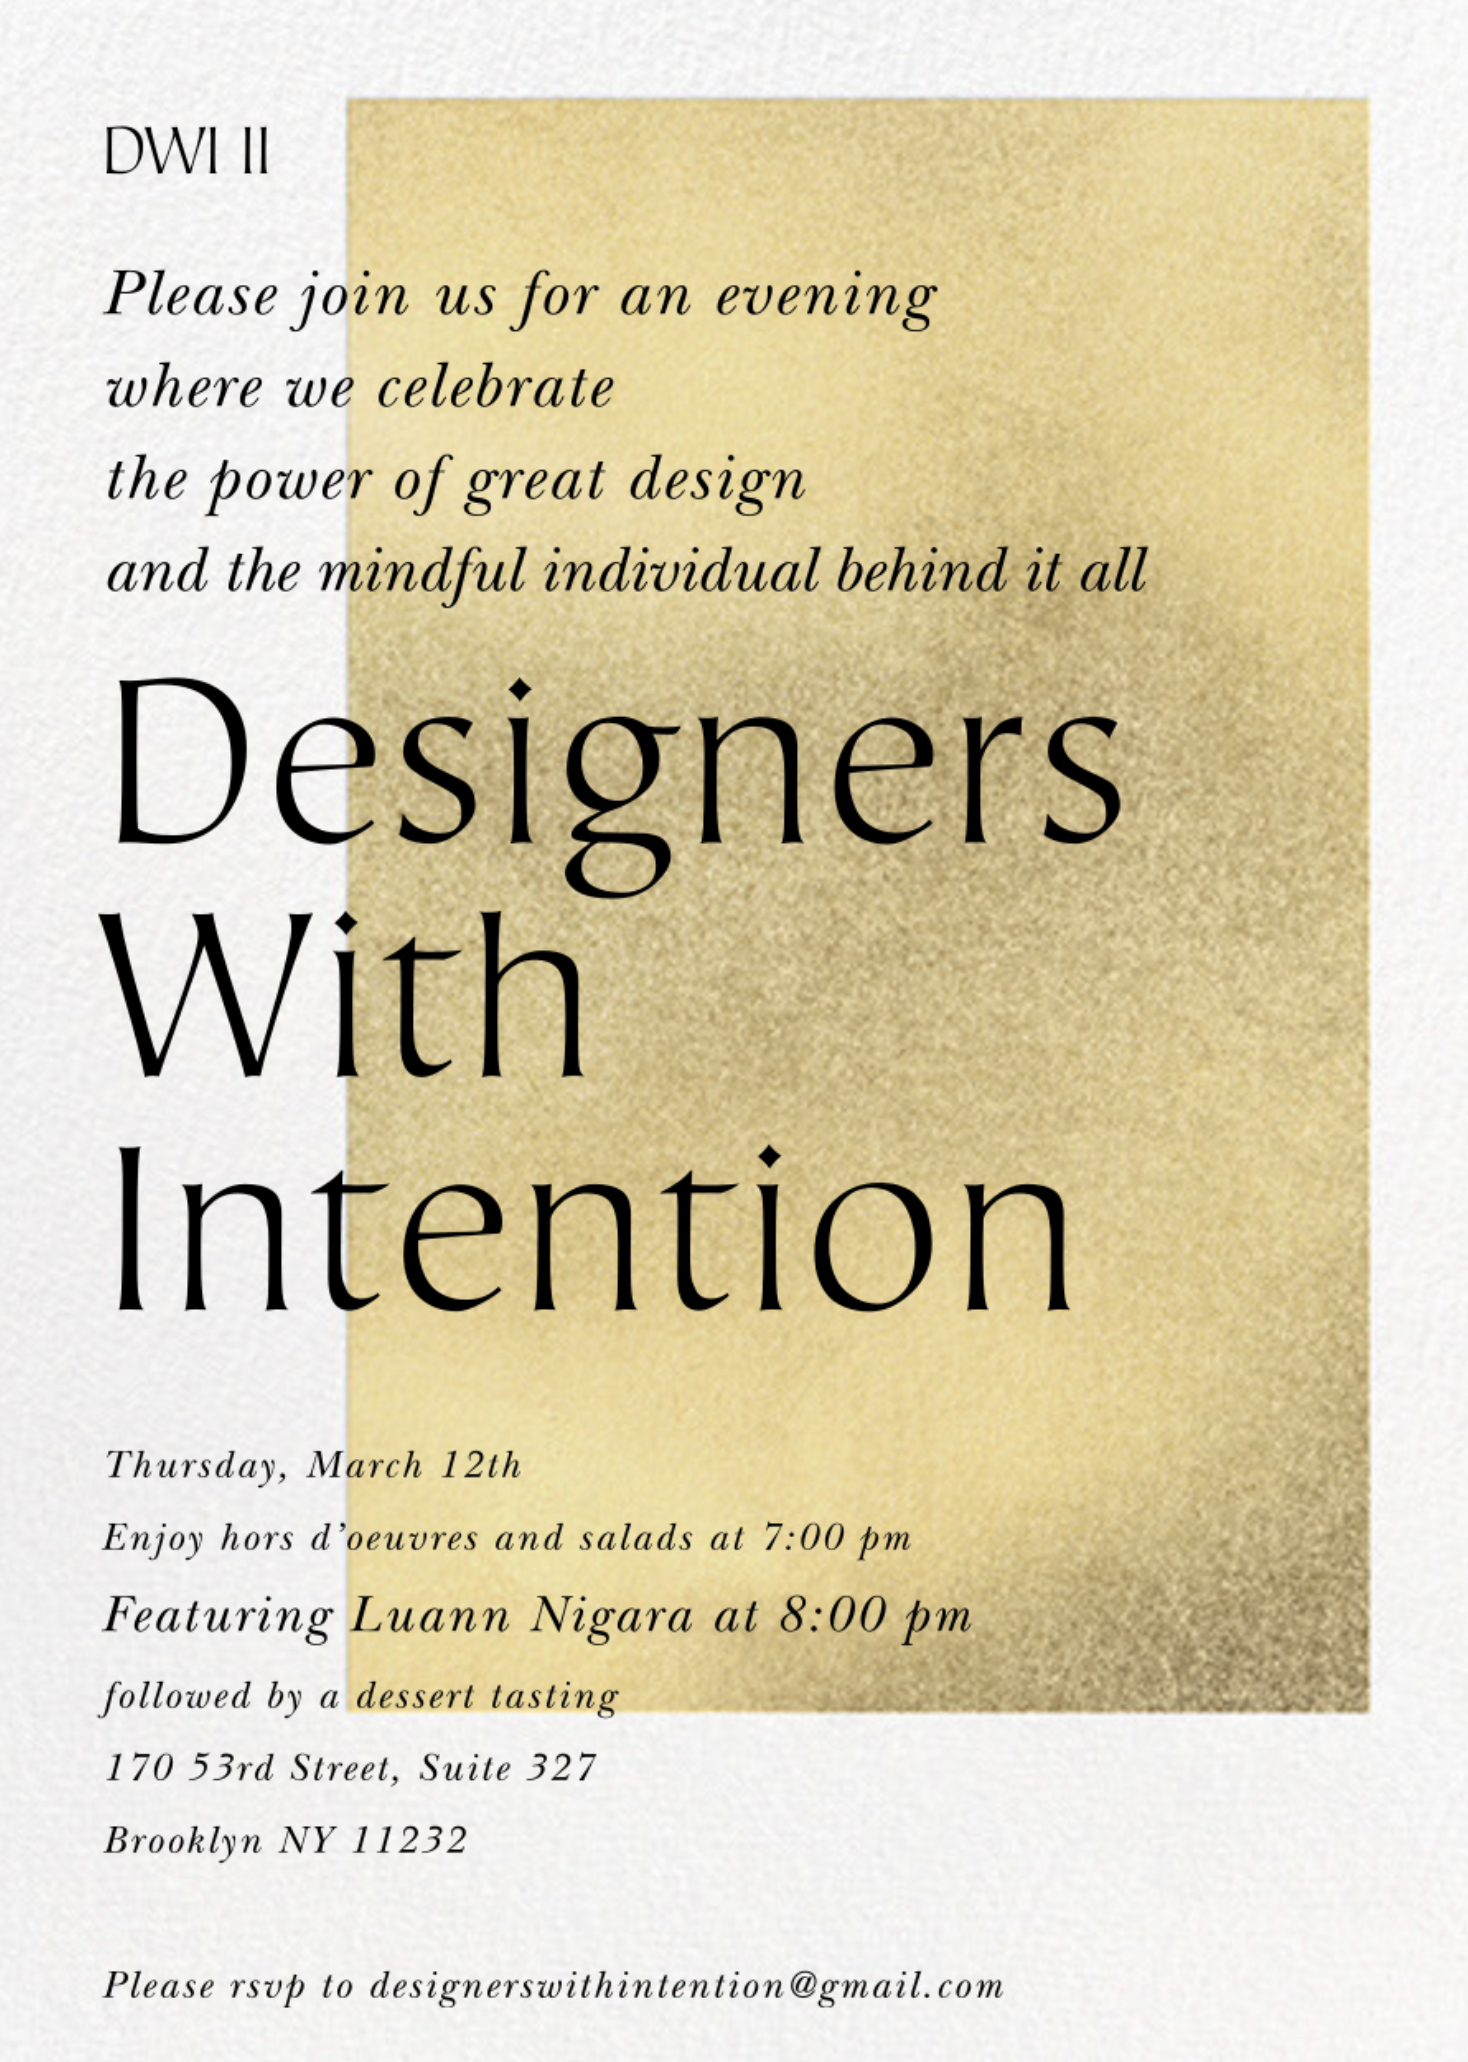 Designers With Intention